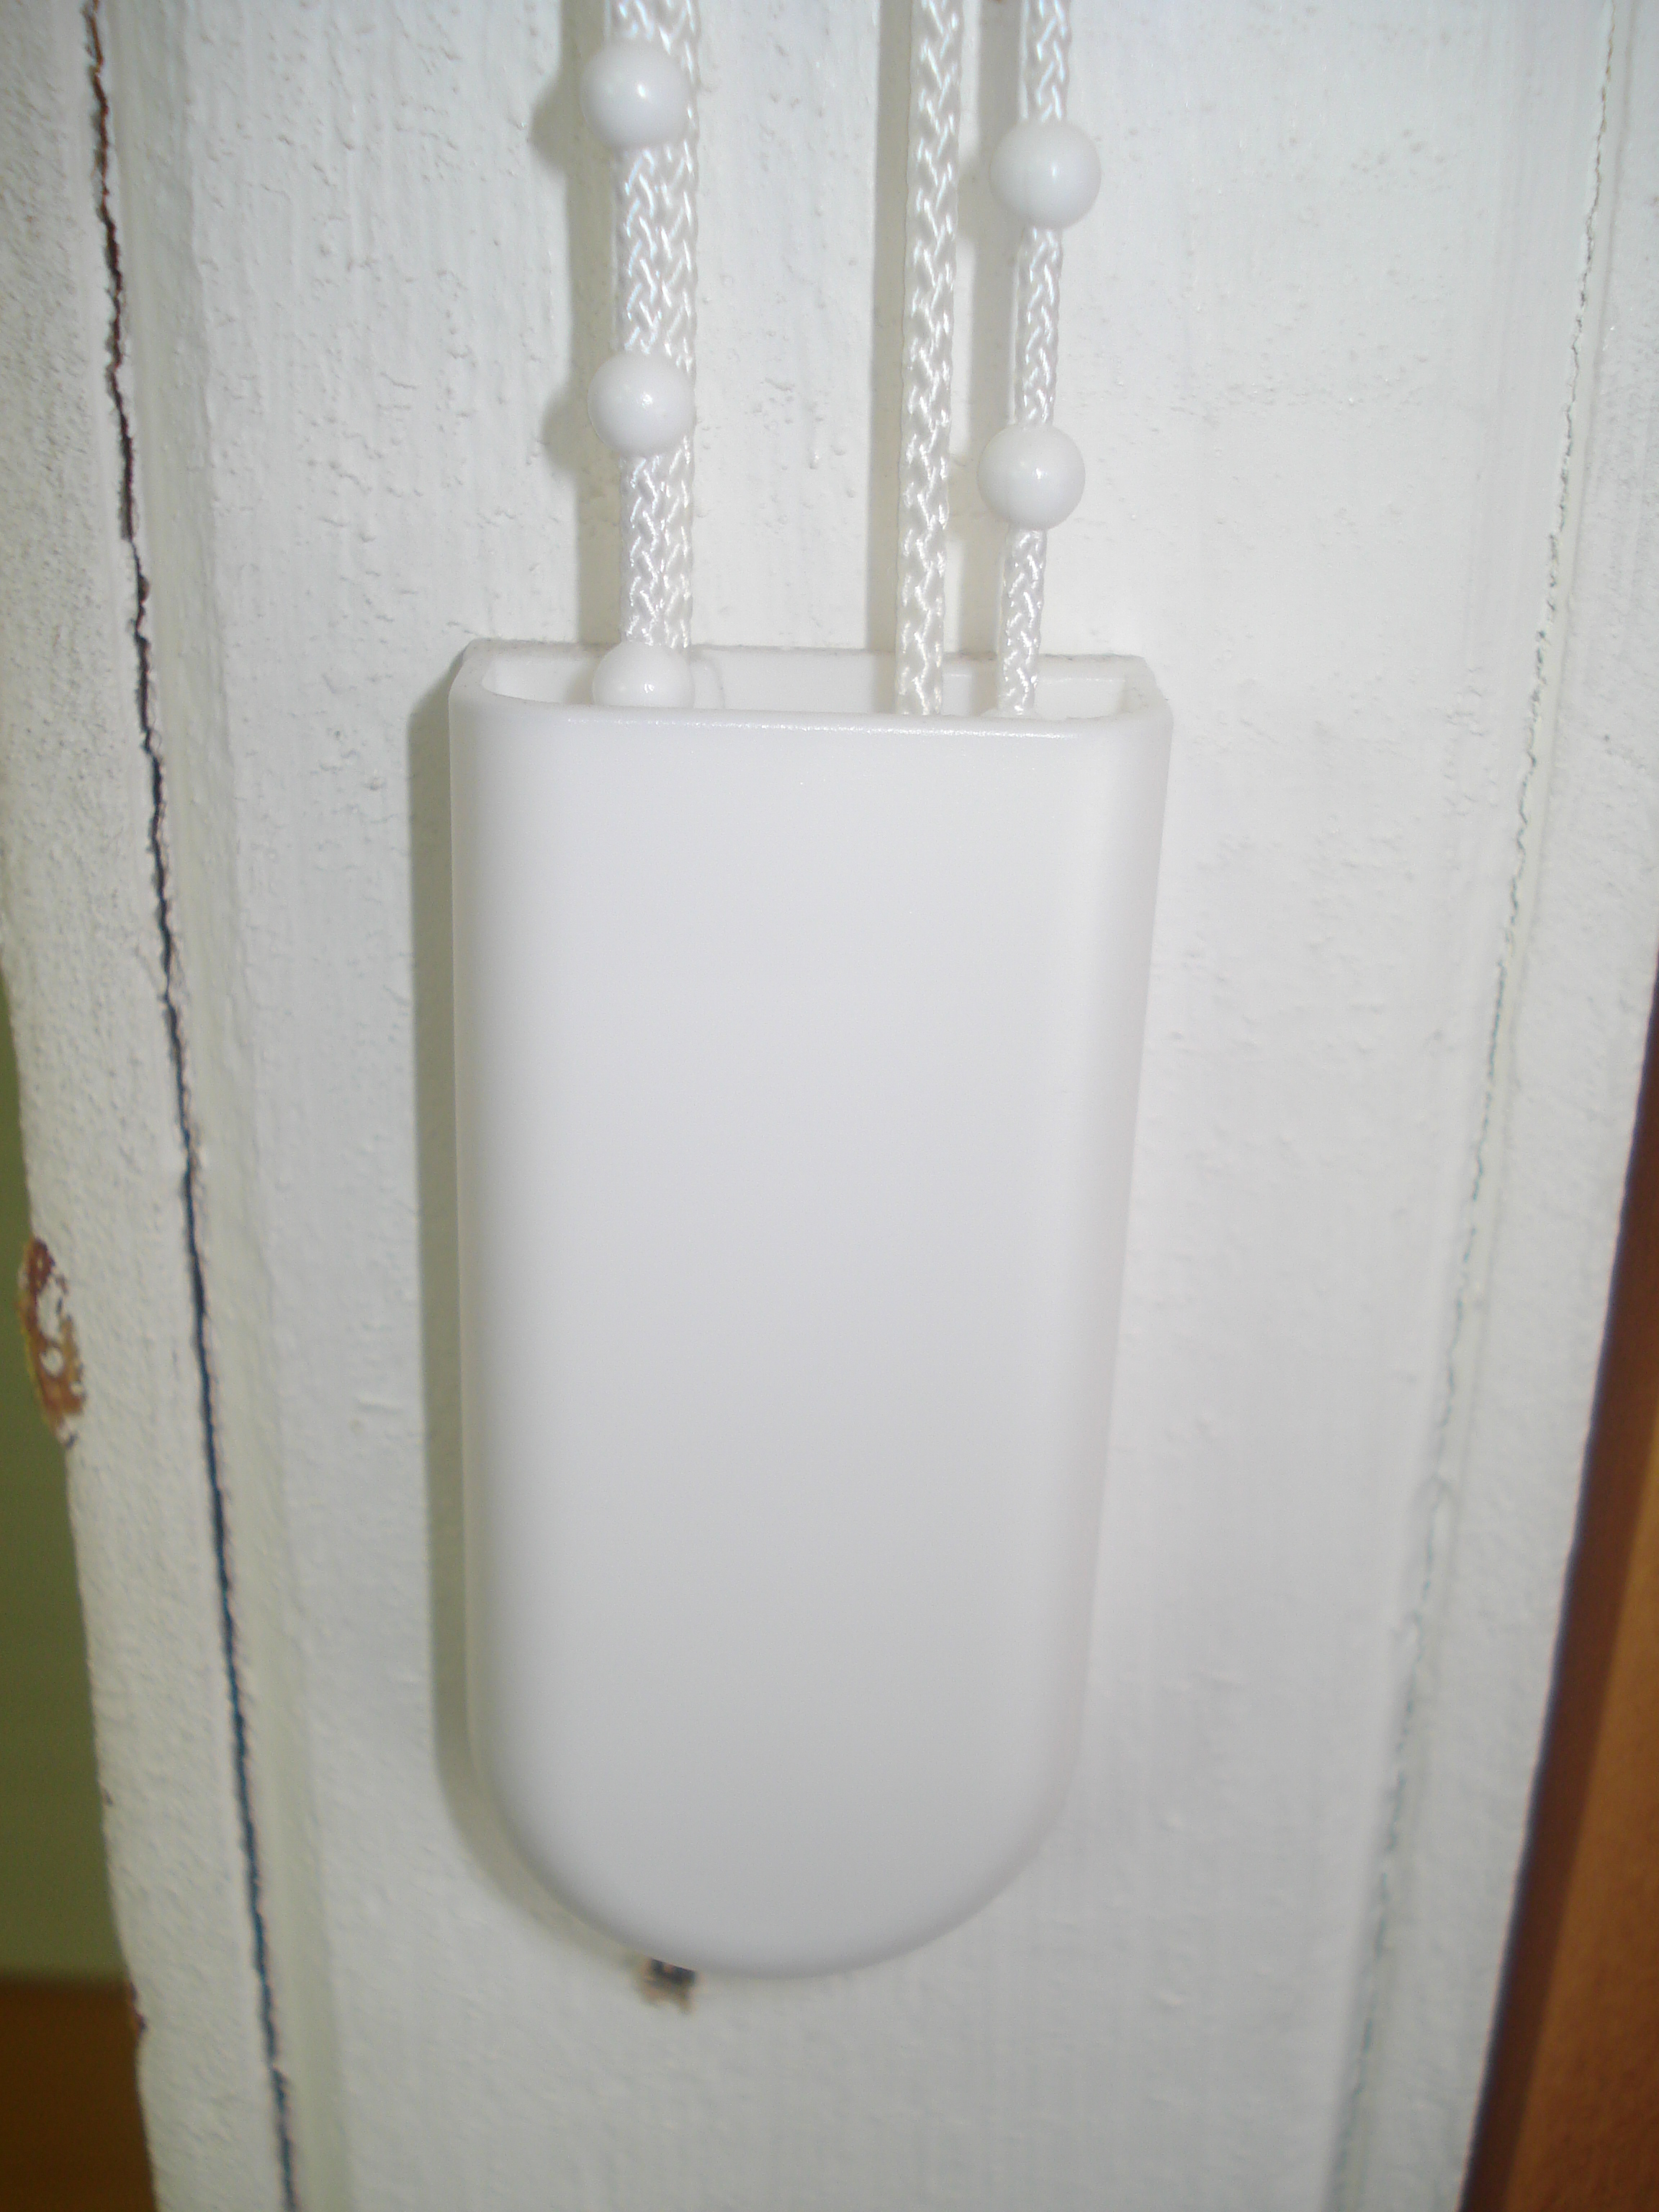 Lh881 Cord Chain Pulley Box Double White Qty1